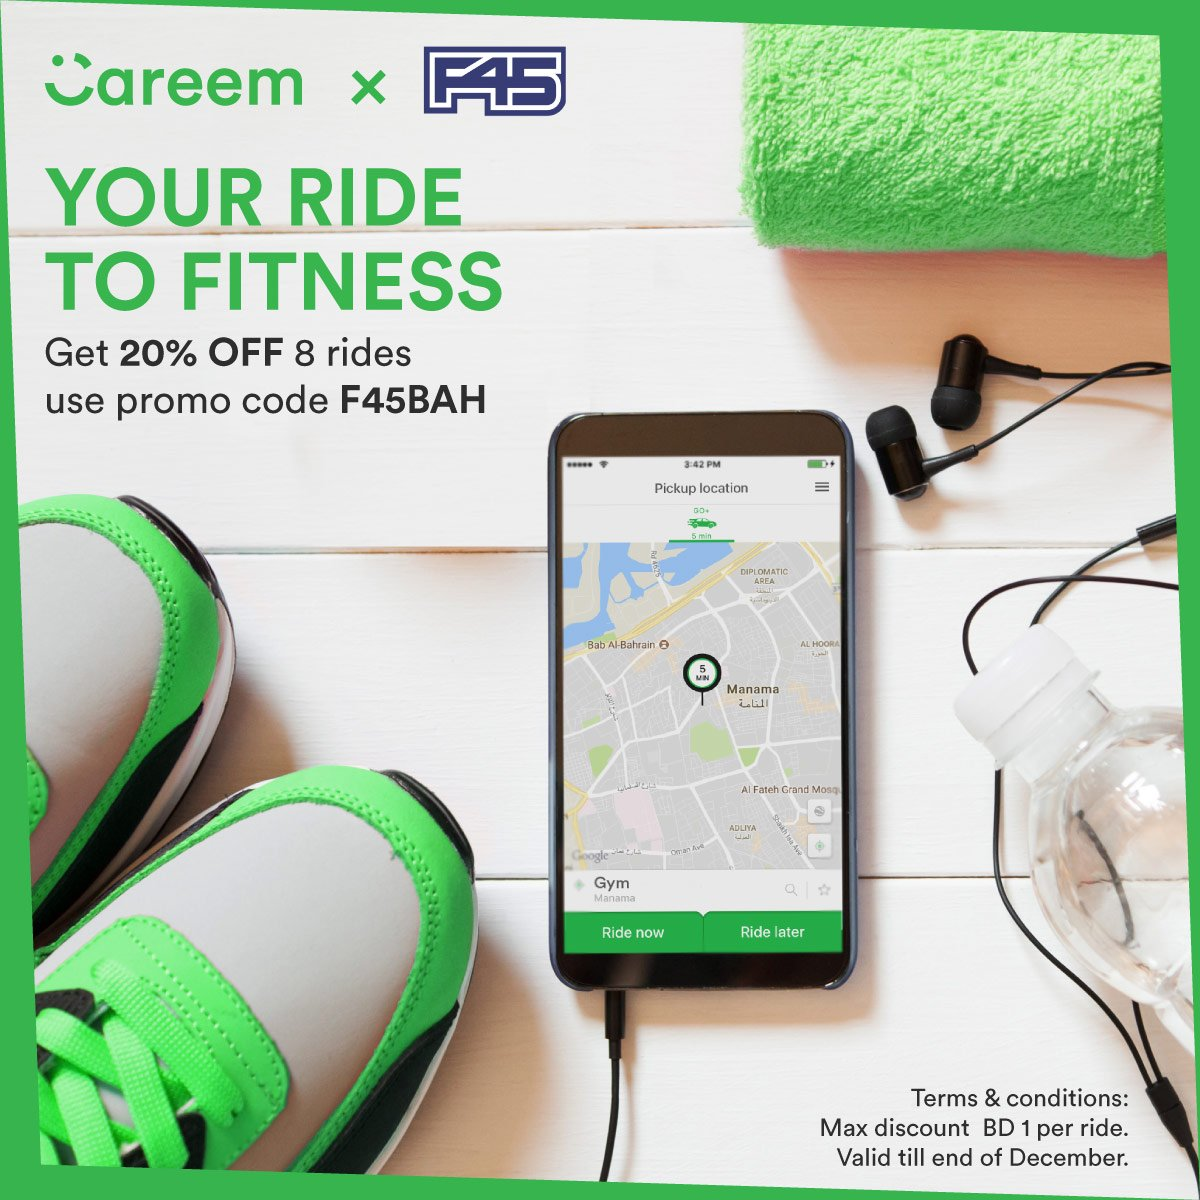 Careem Bahrain on Twitter: